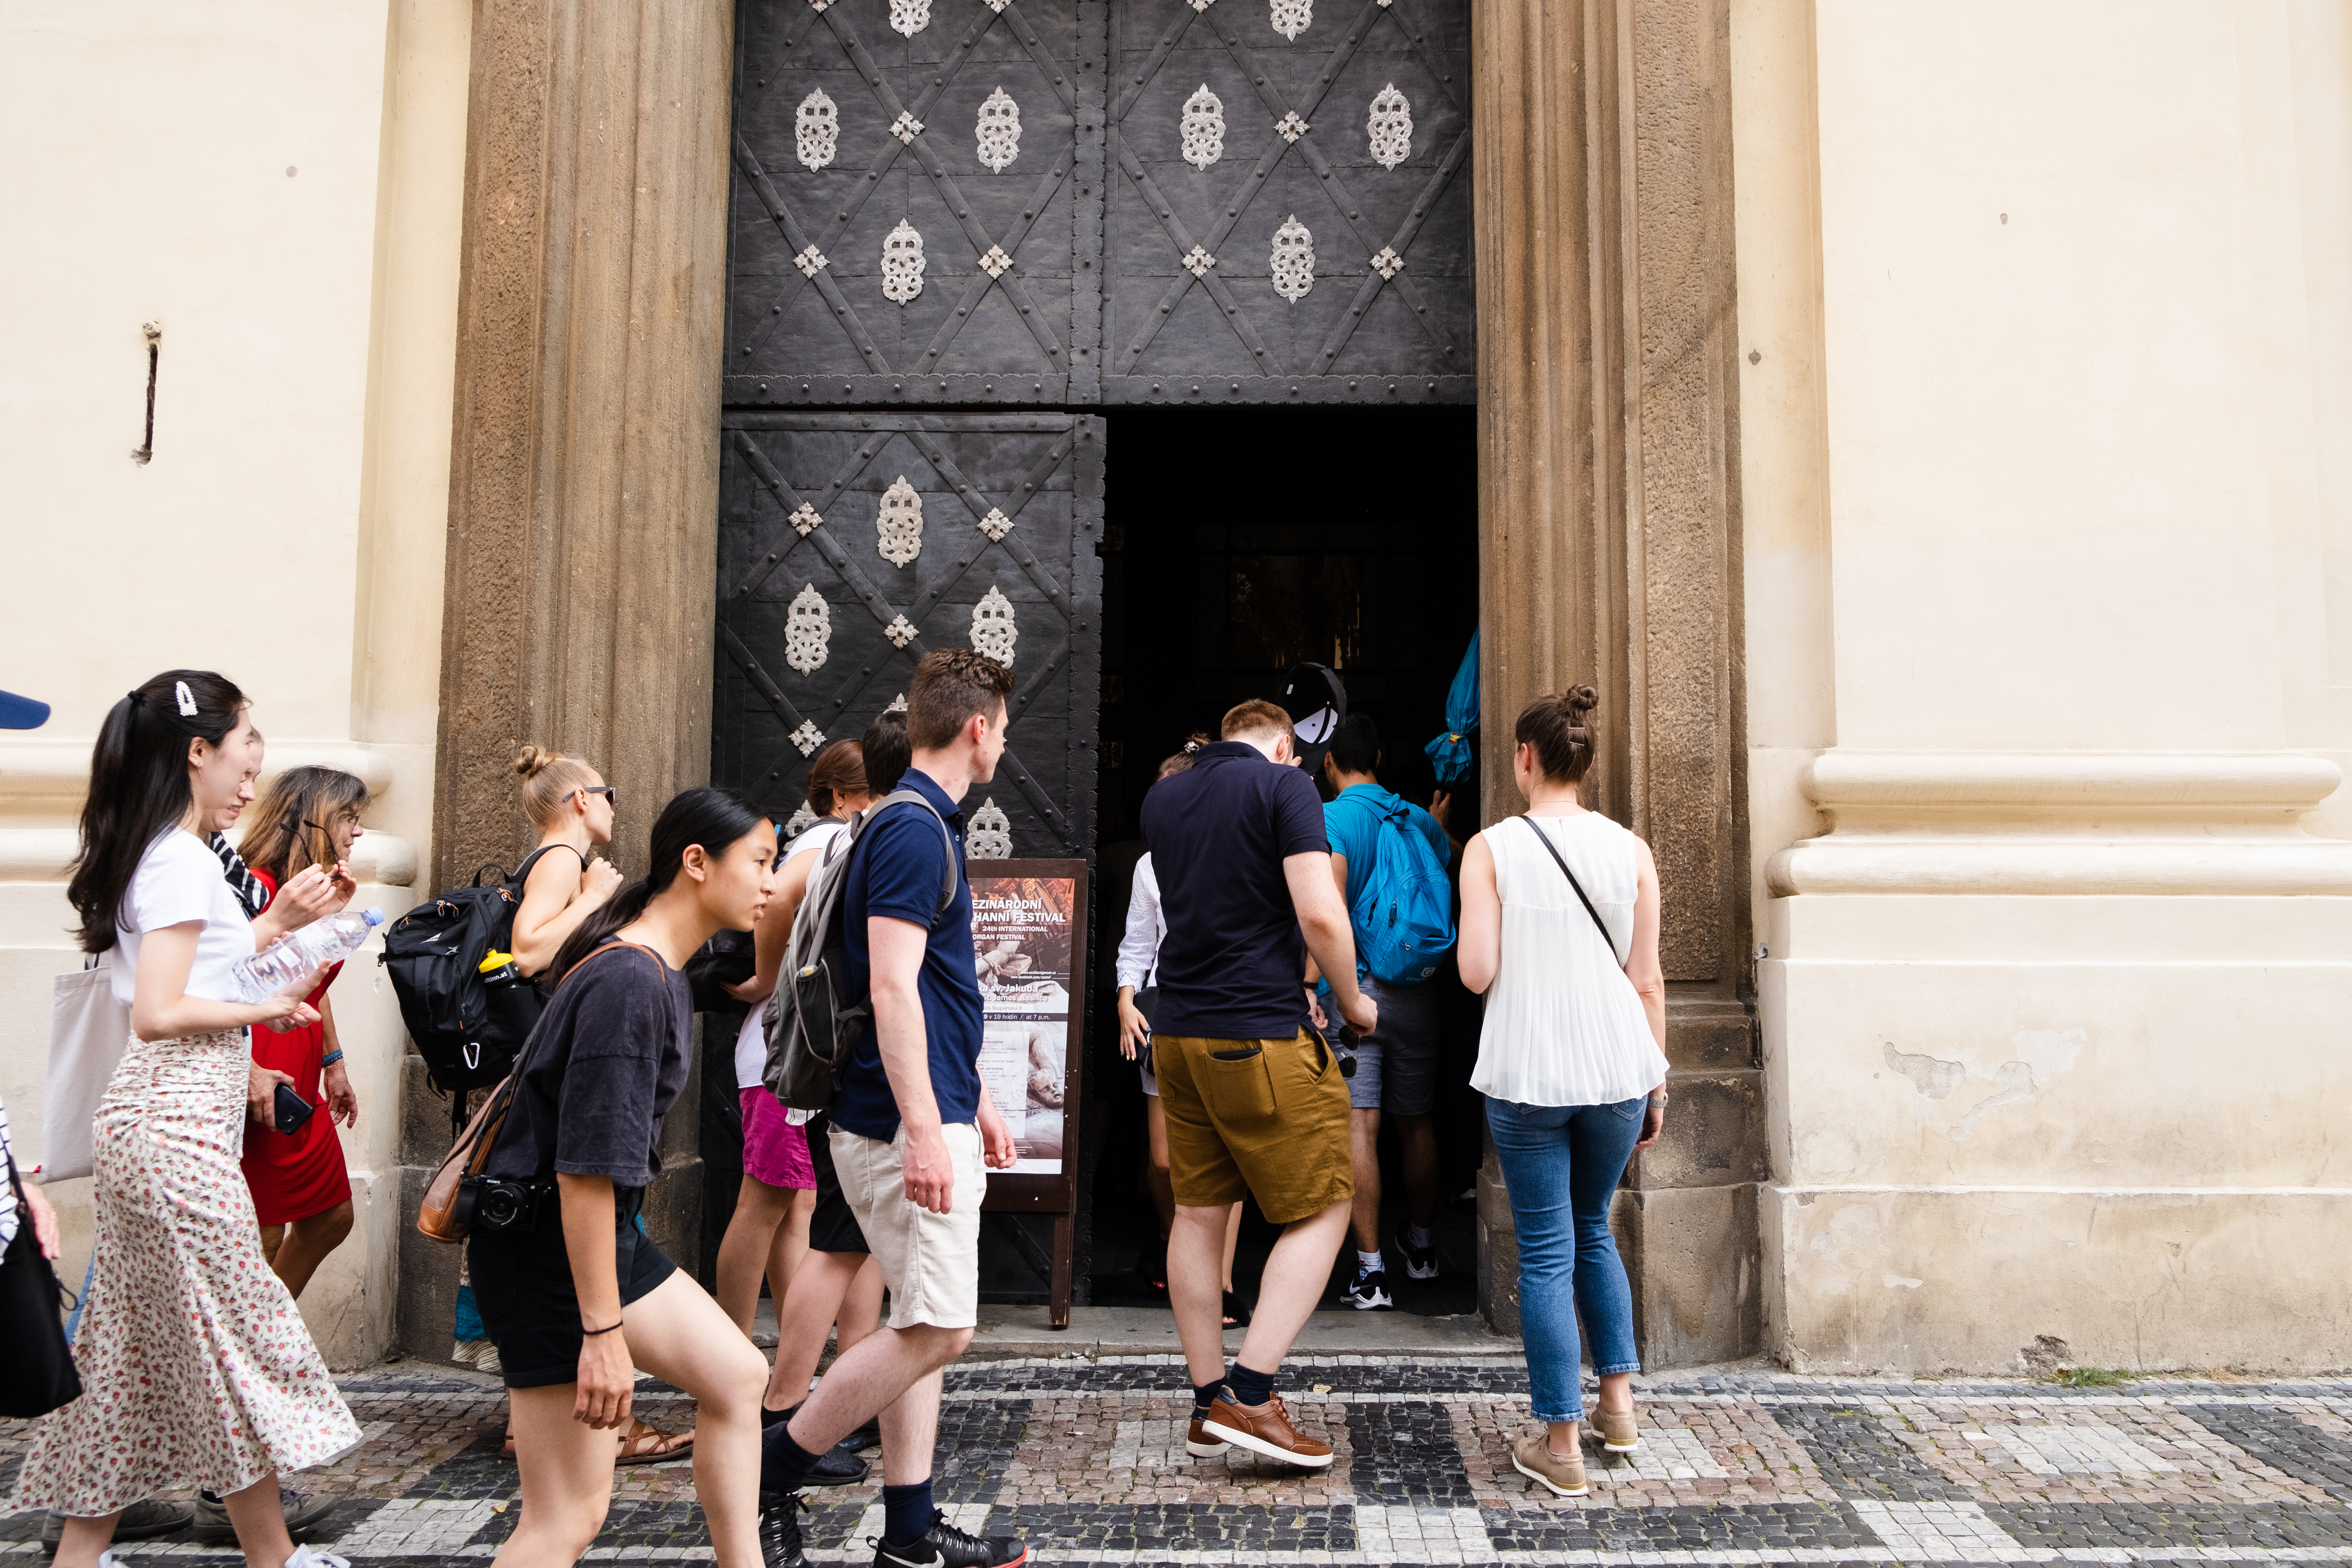 A group of tourists entering a cathedral during a free walking tour of Prague